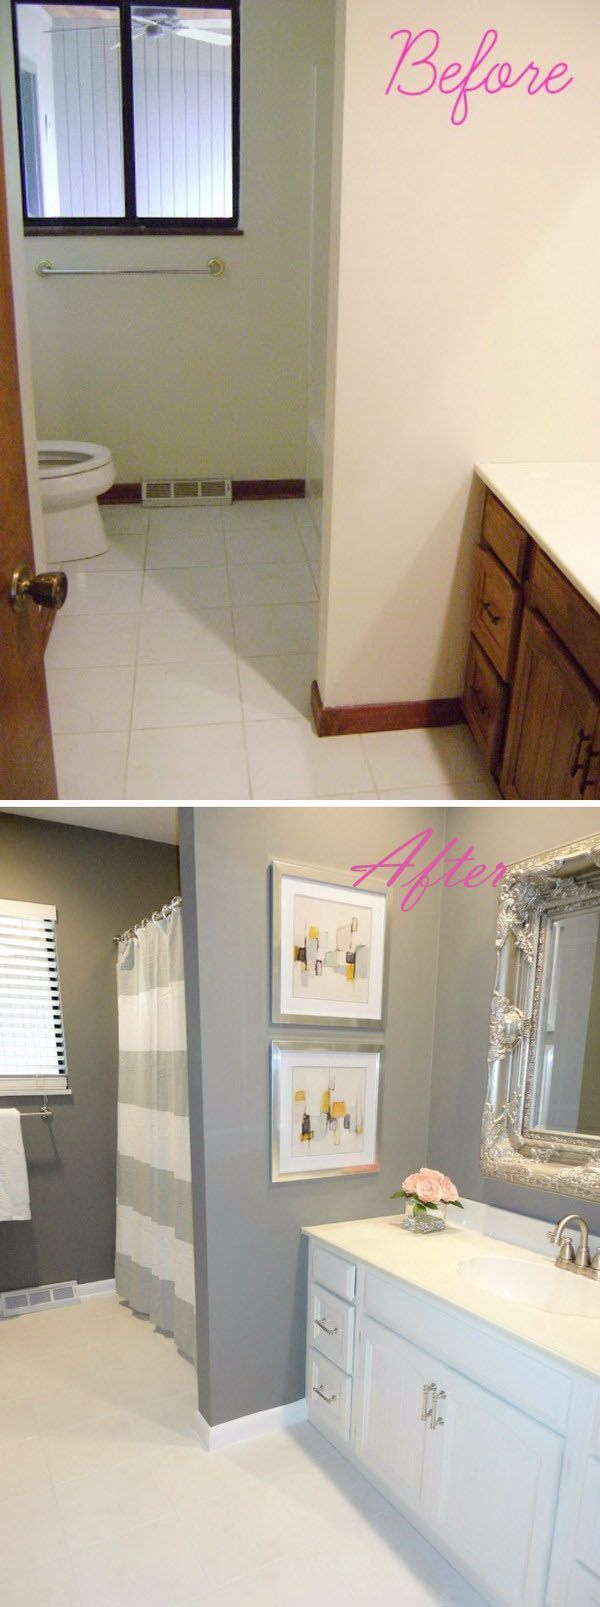 best 25+ restroom remodel ideas on pinterest | inspired small